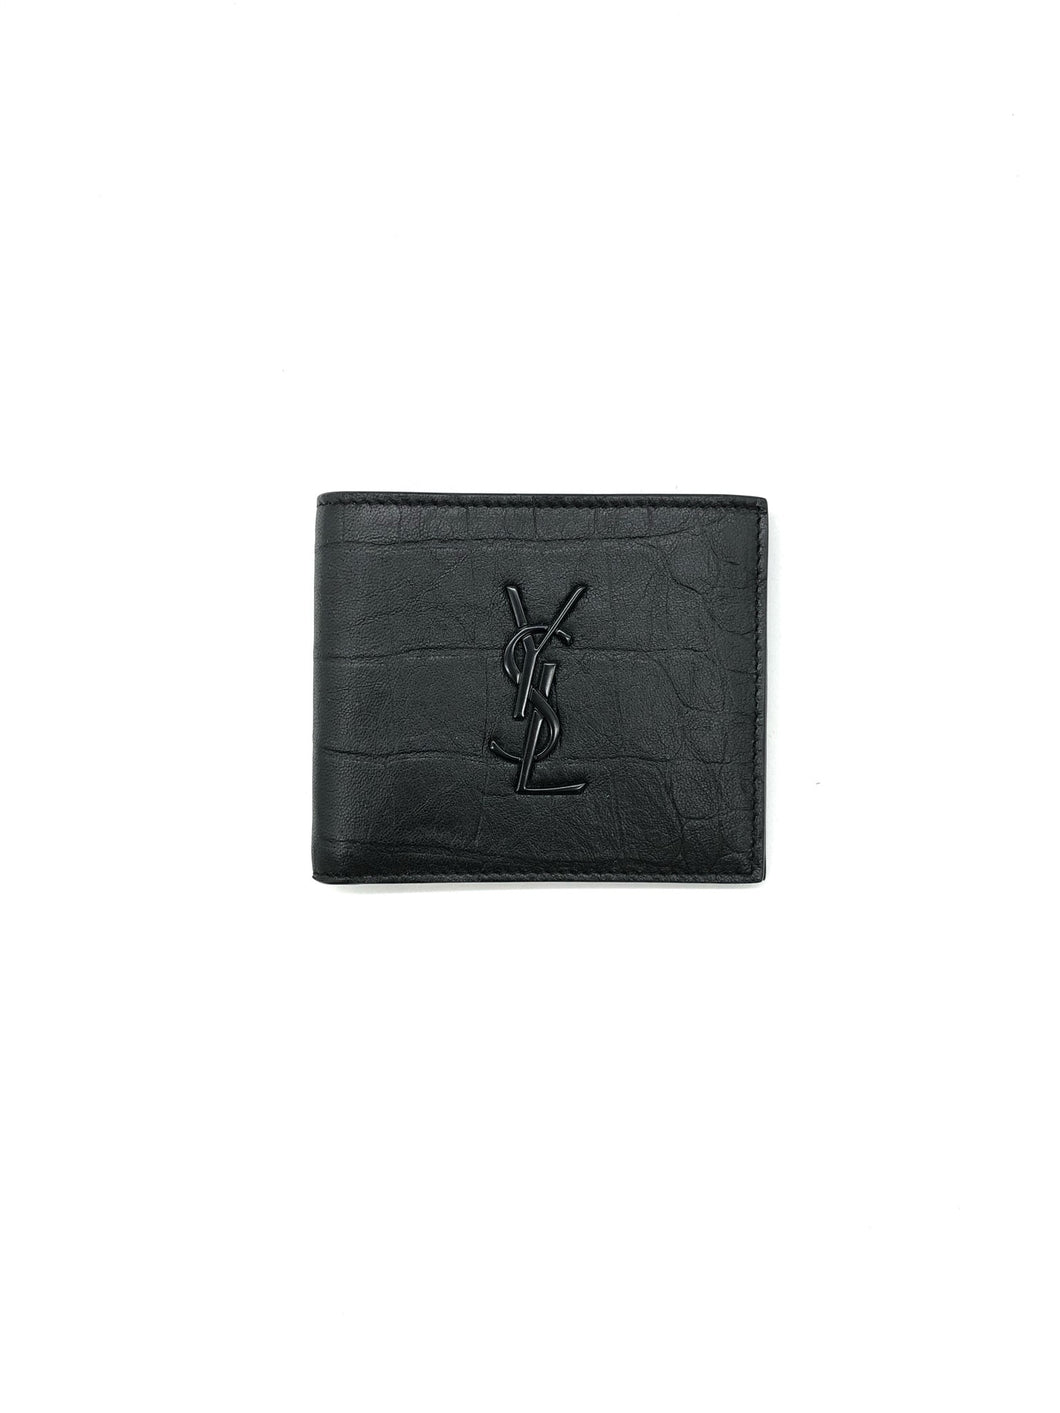 Yves Saint Laurent Monogram Billfold Wallet